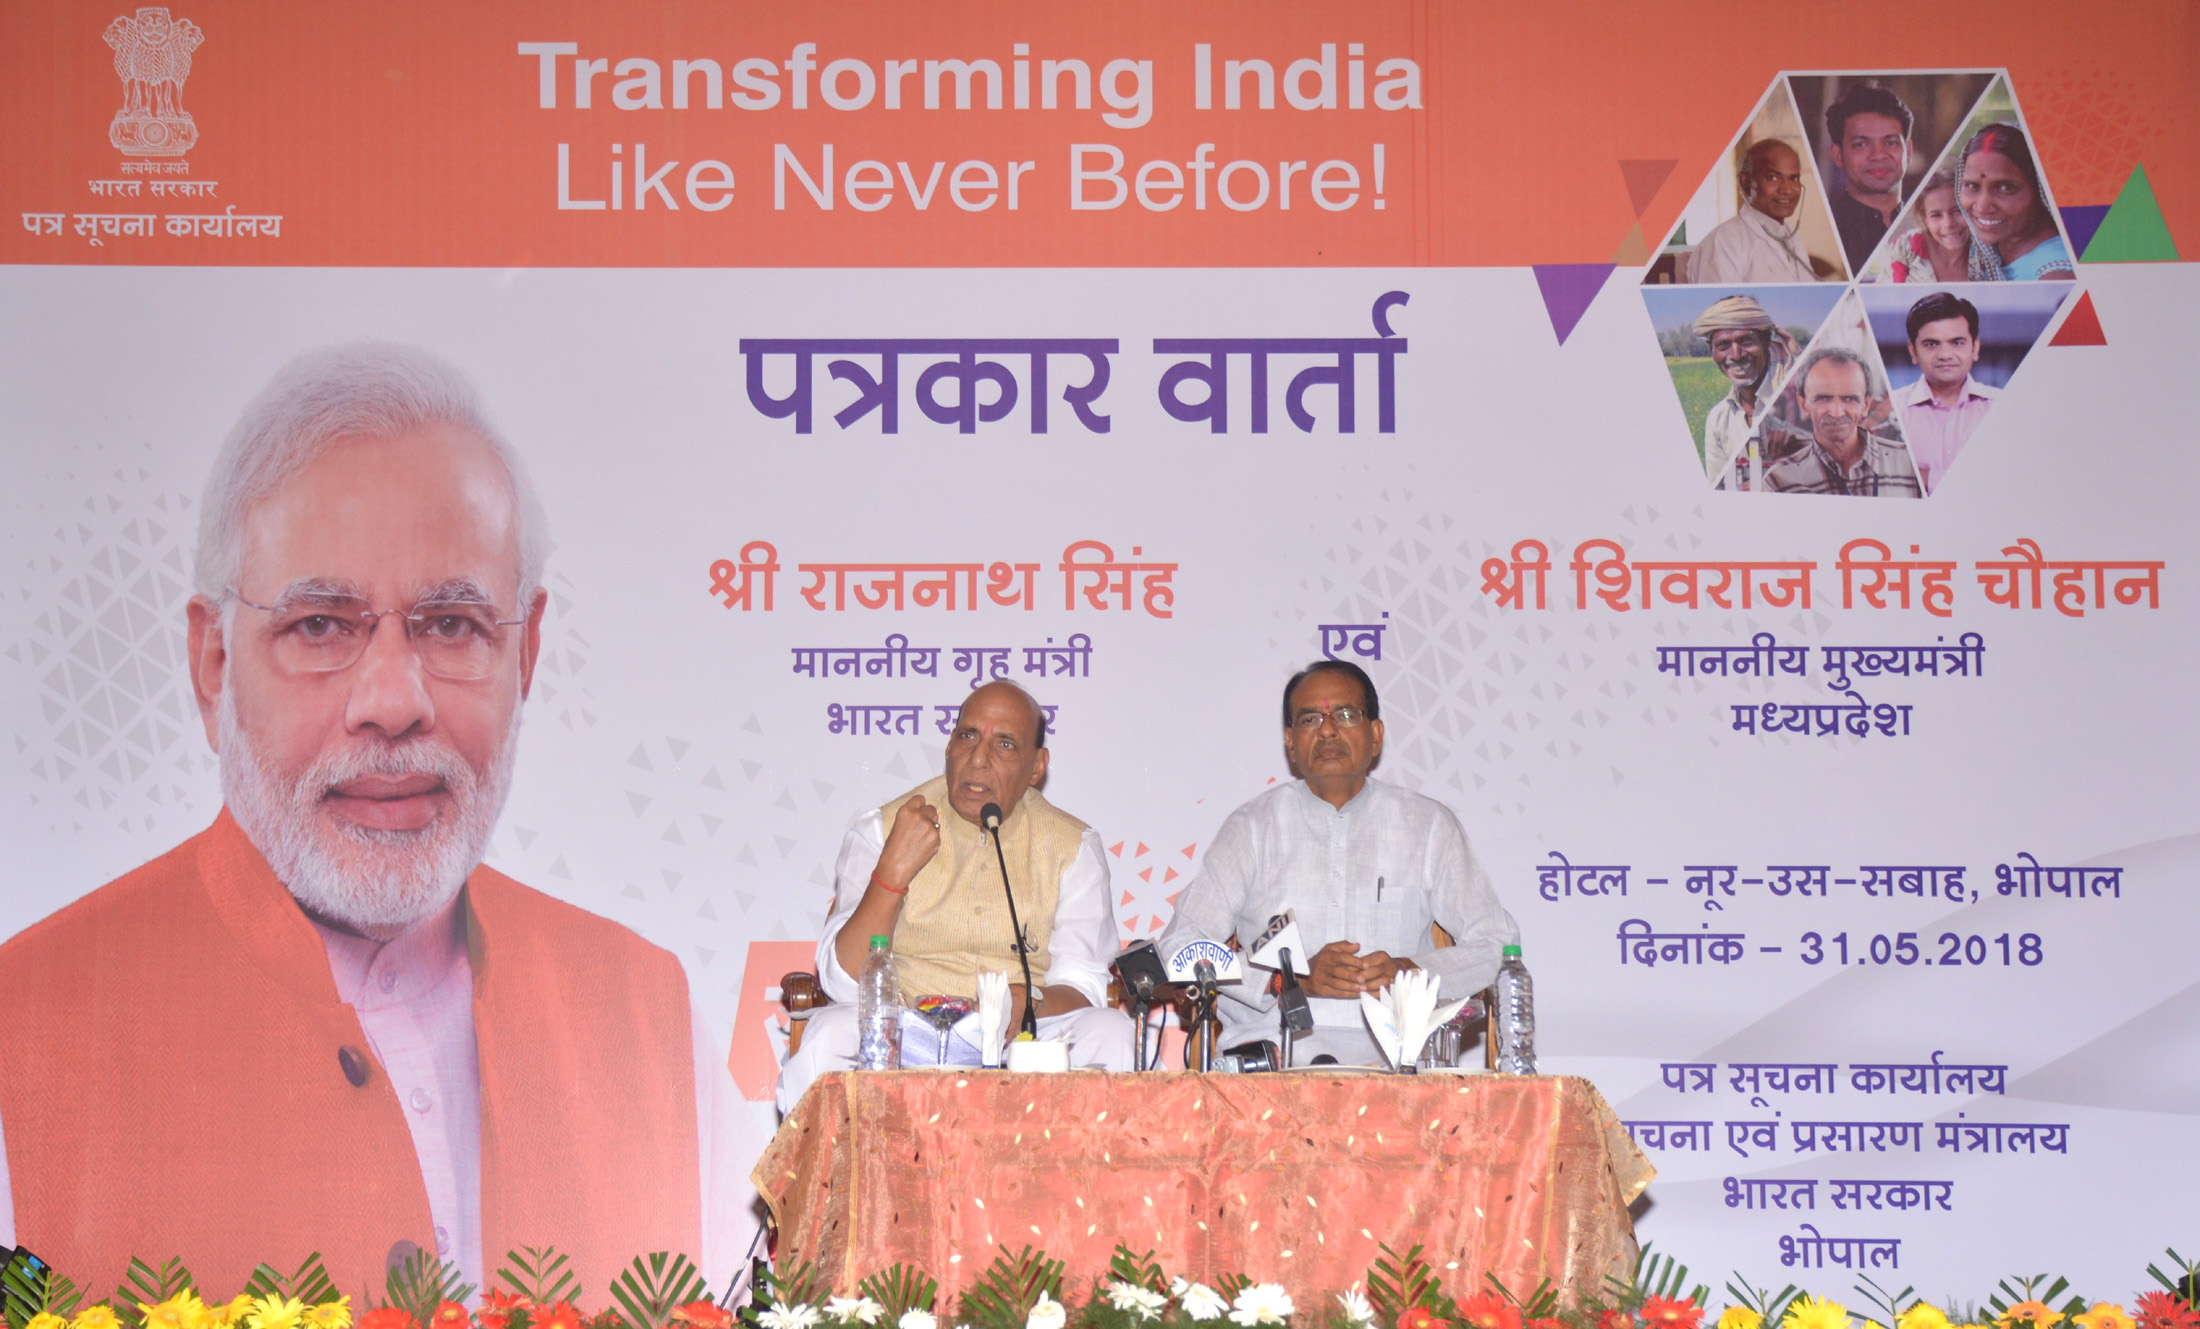 The Union Home Minister, Shri Rajnath Singh addressing a press conference, in Bhopal, Madhya Pradesh on May 31, 2018.  	The Chief Minister of Madhya Pradesh, Shri Shivraj Singh Chauhan is also seen.